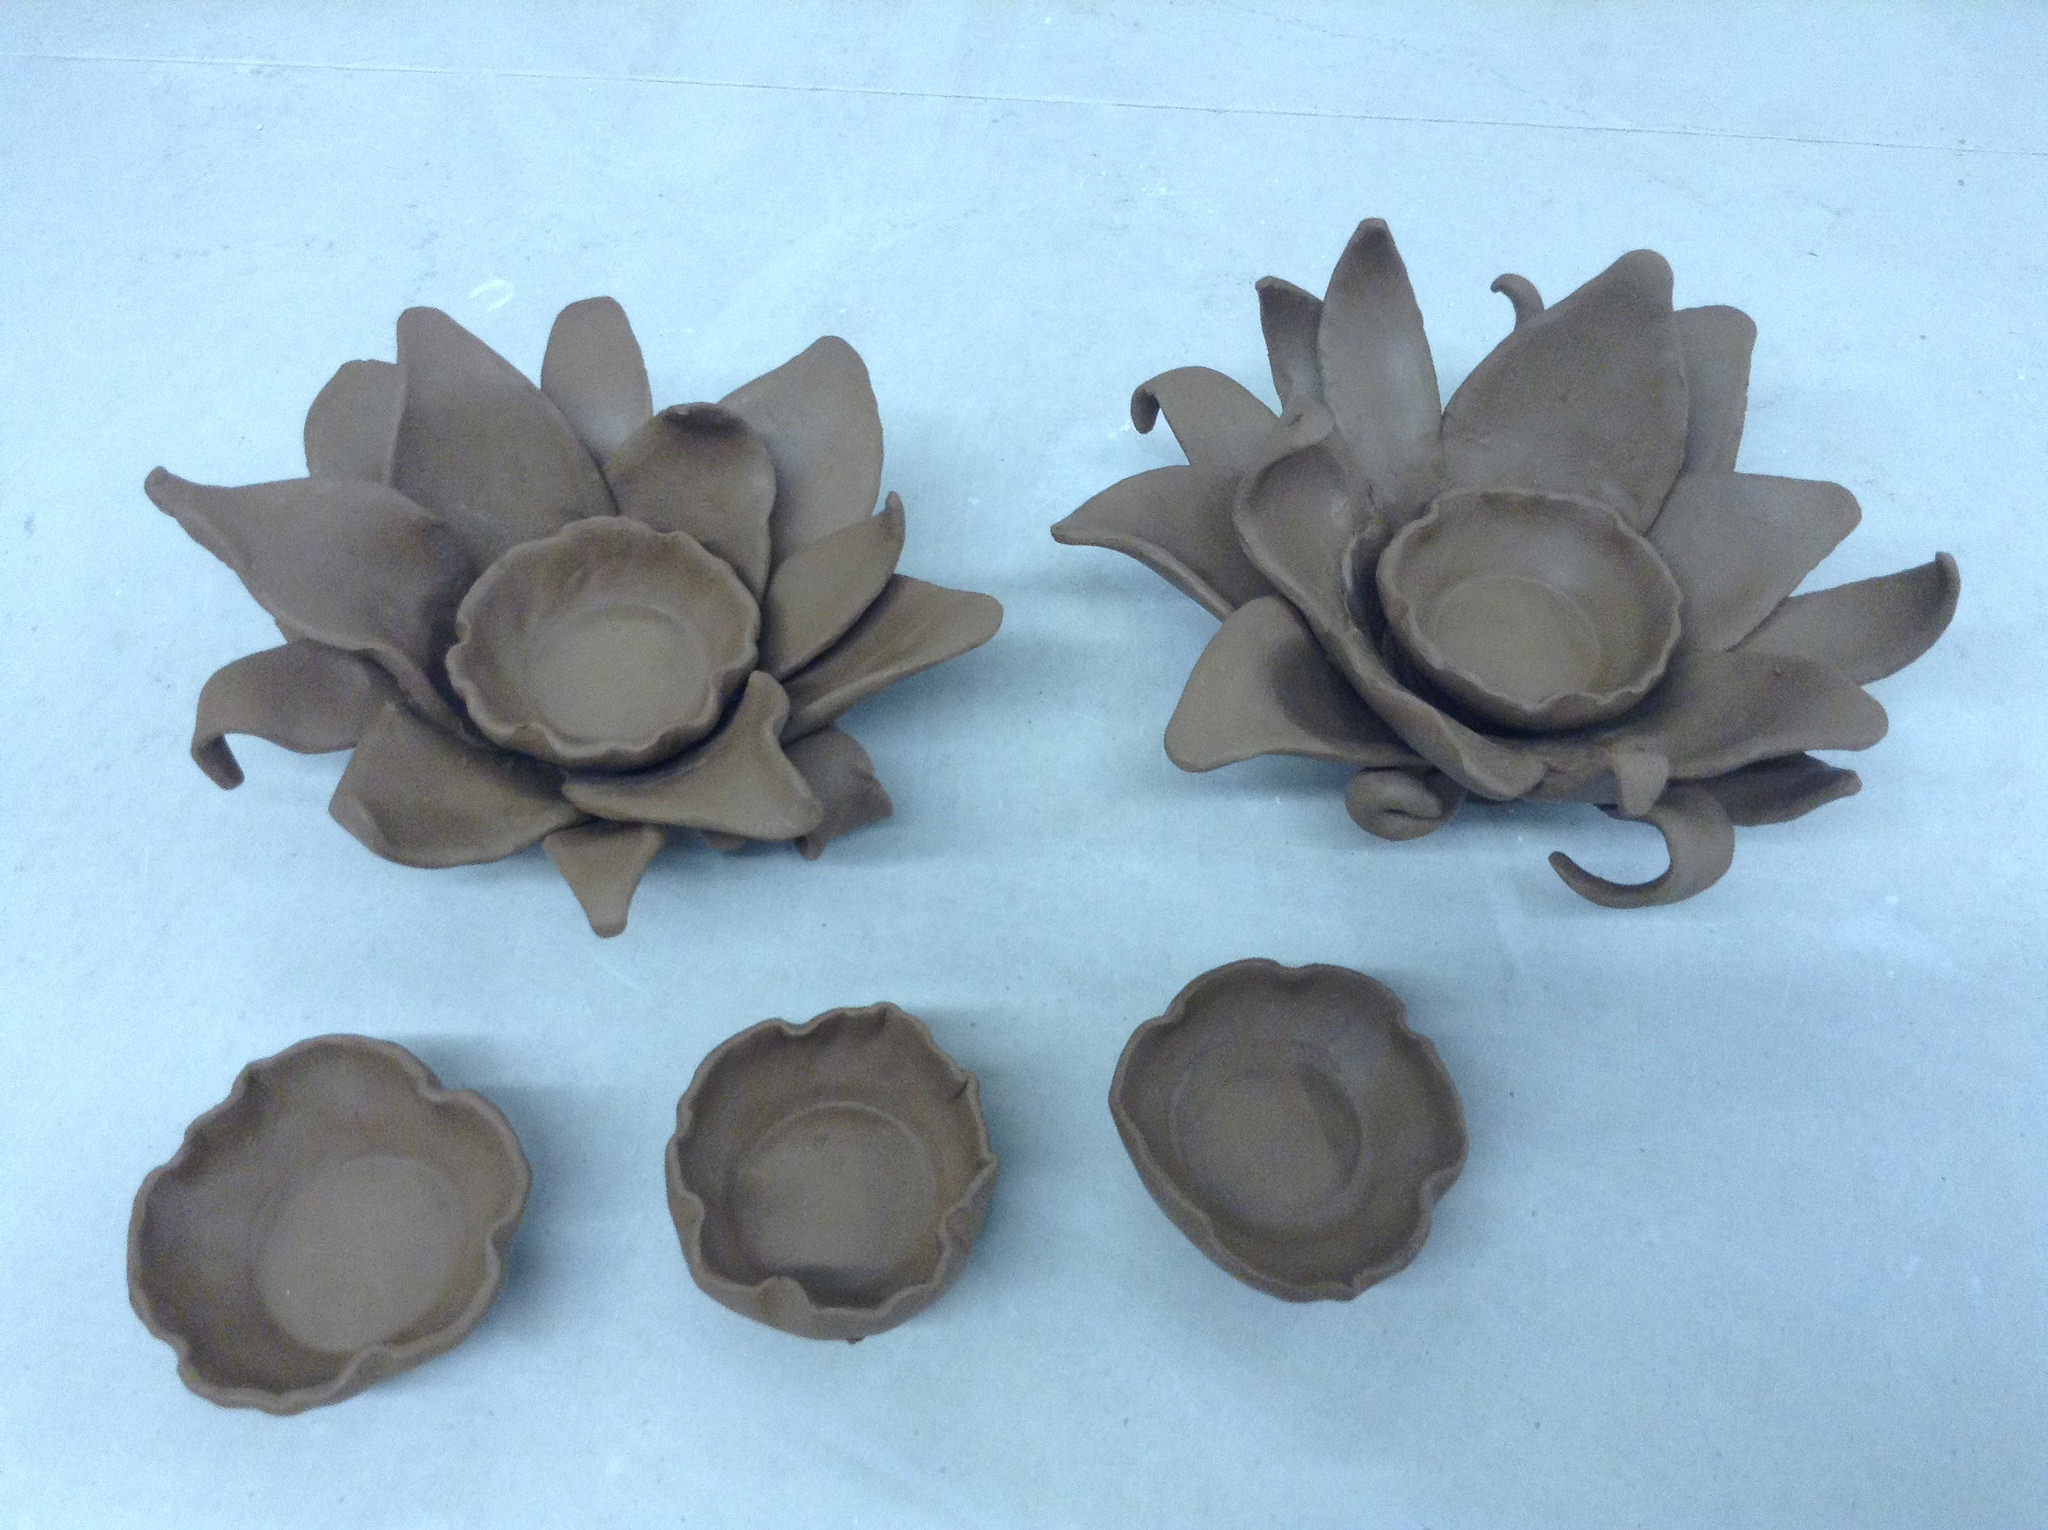 Two flower forms, shown with three separate candle-holding cups.